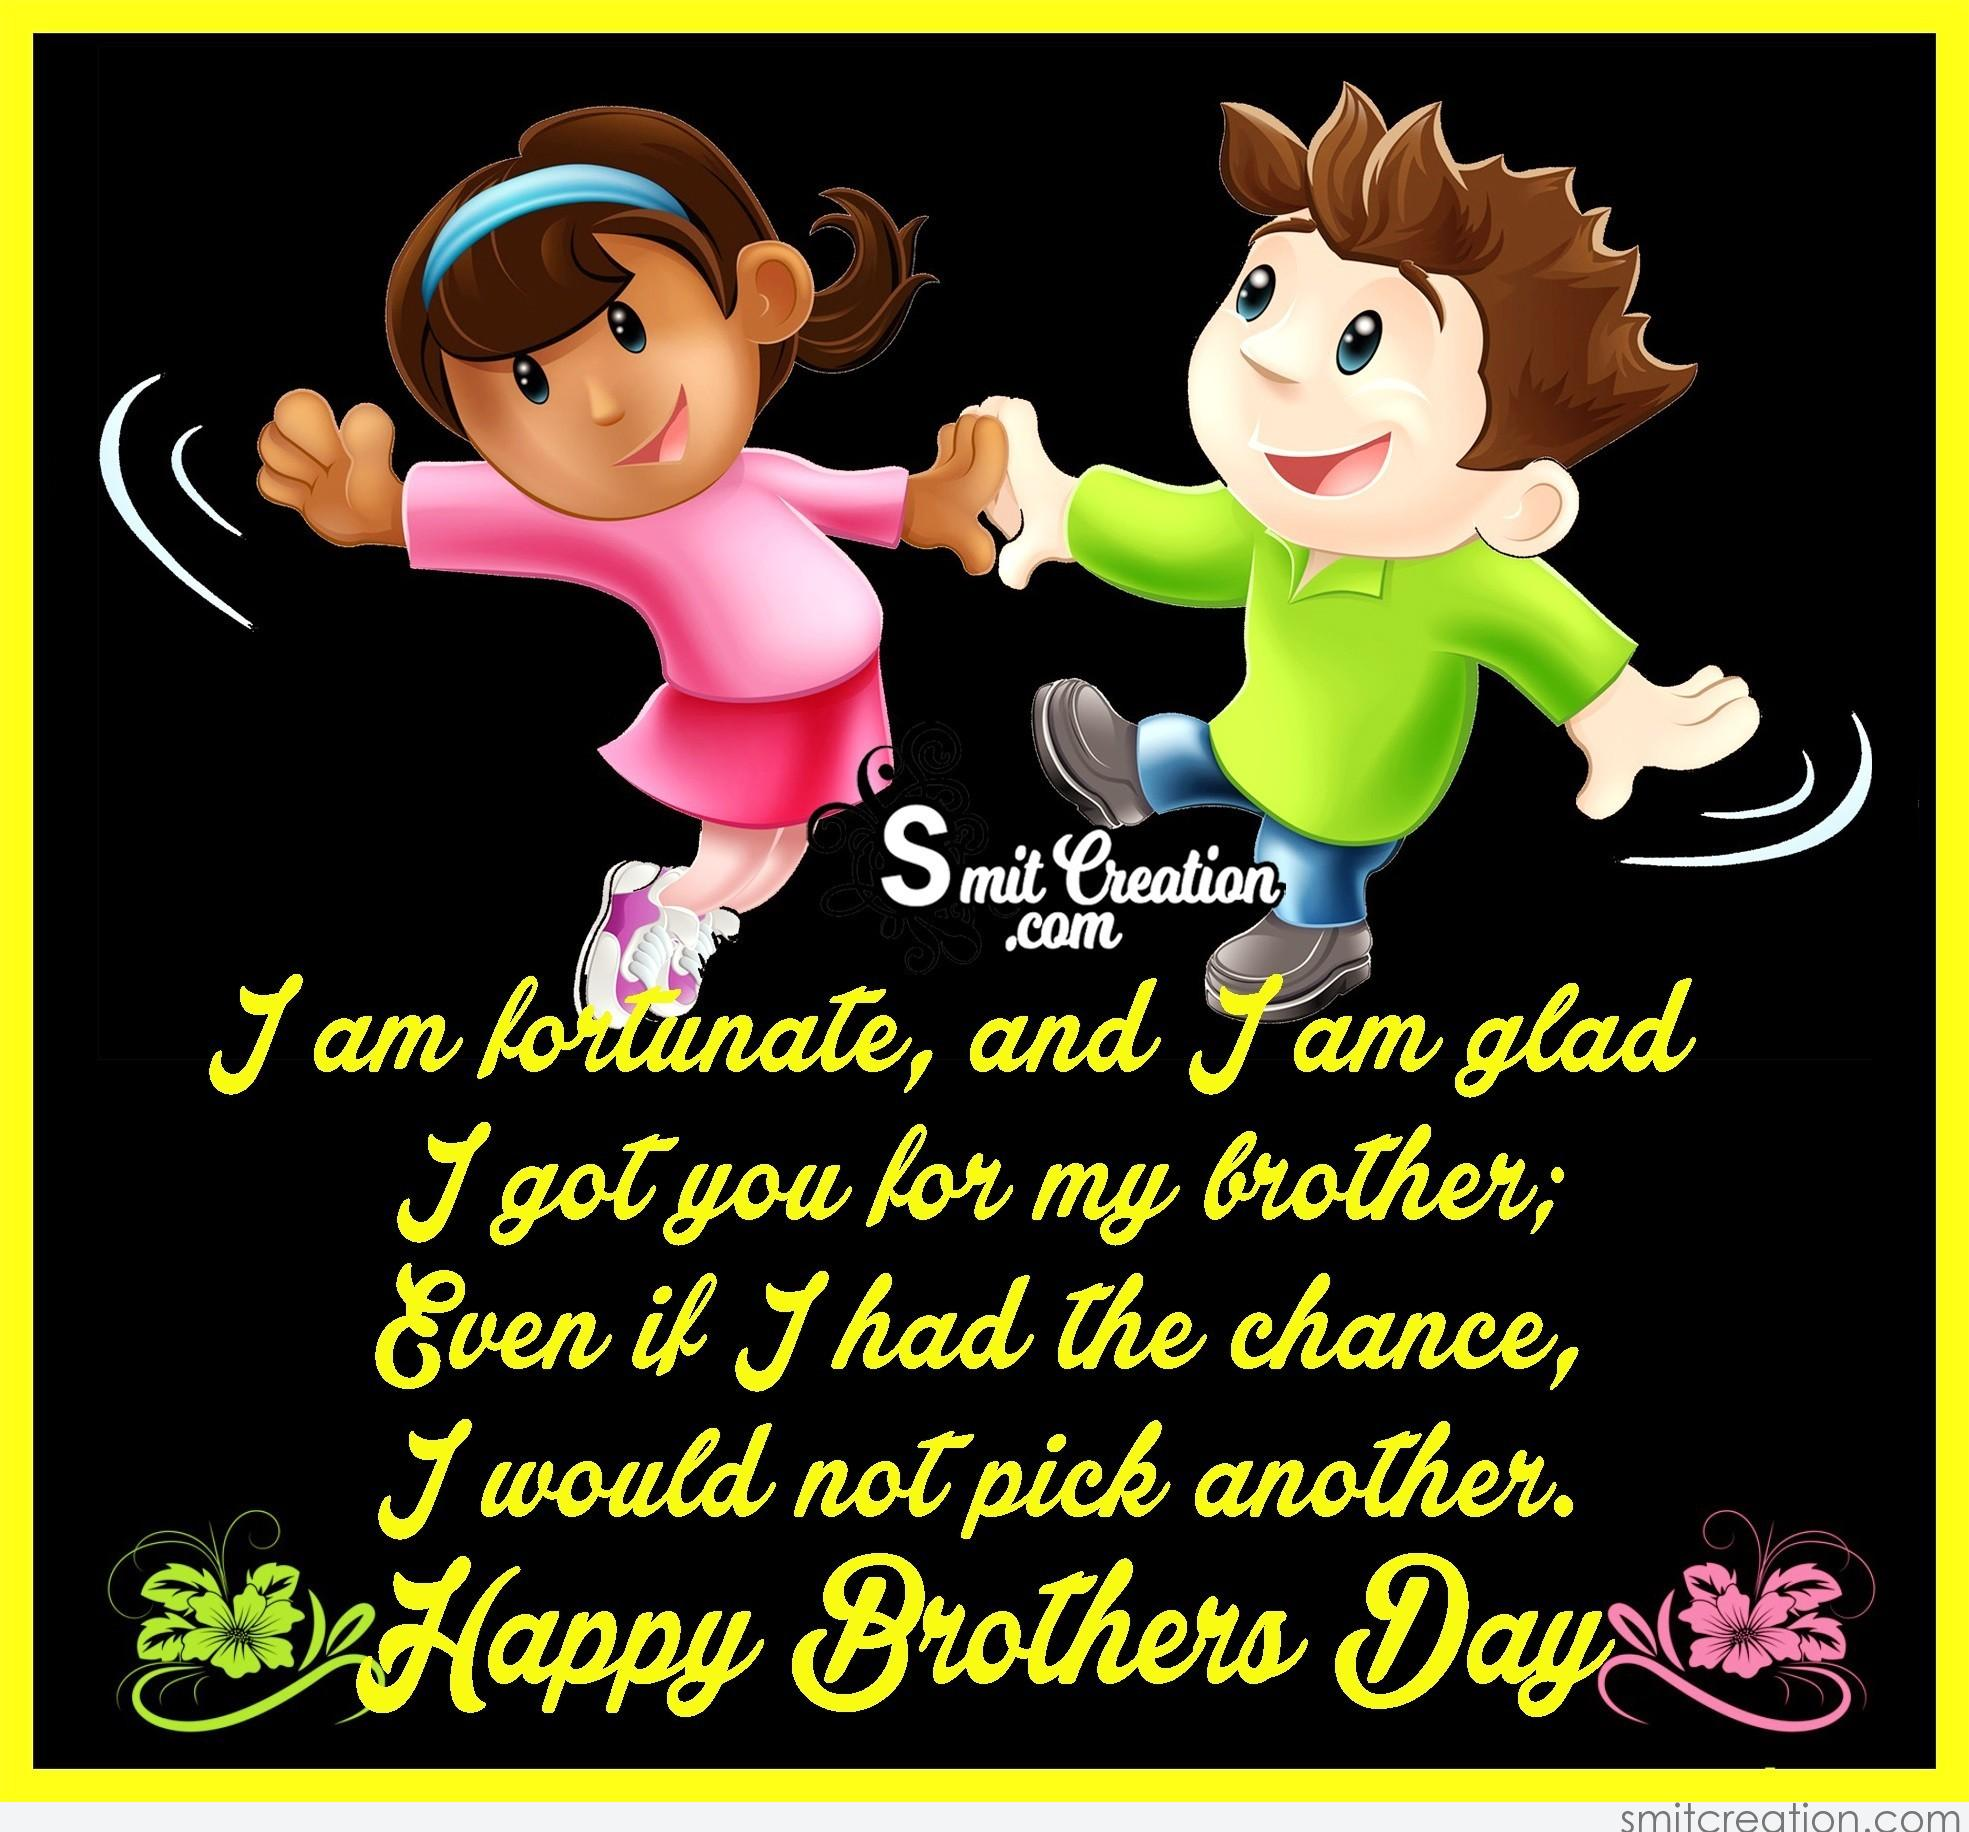 Brothers Day Pictures and Graphics   SmitCreationcom   Page 2 1969x1832